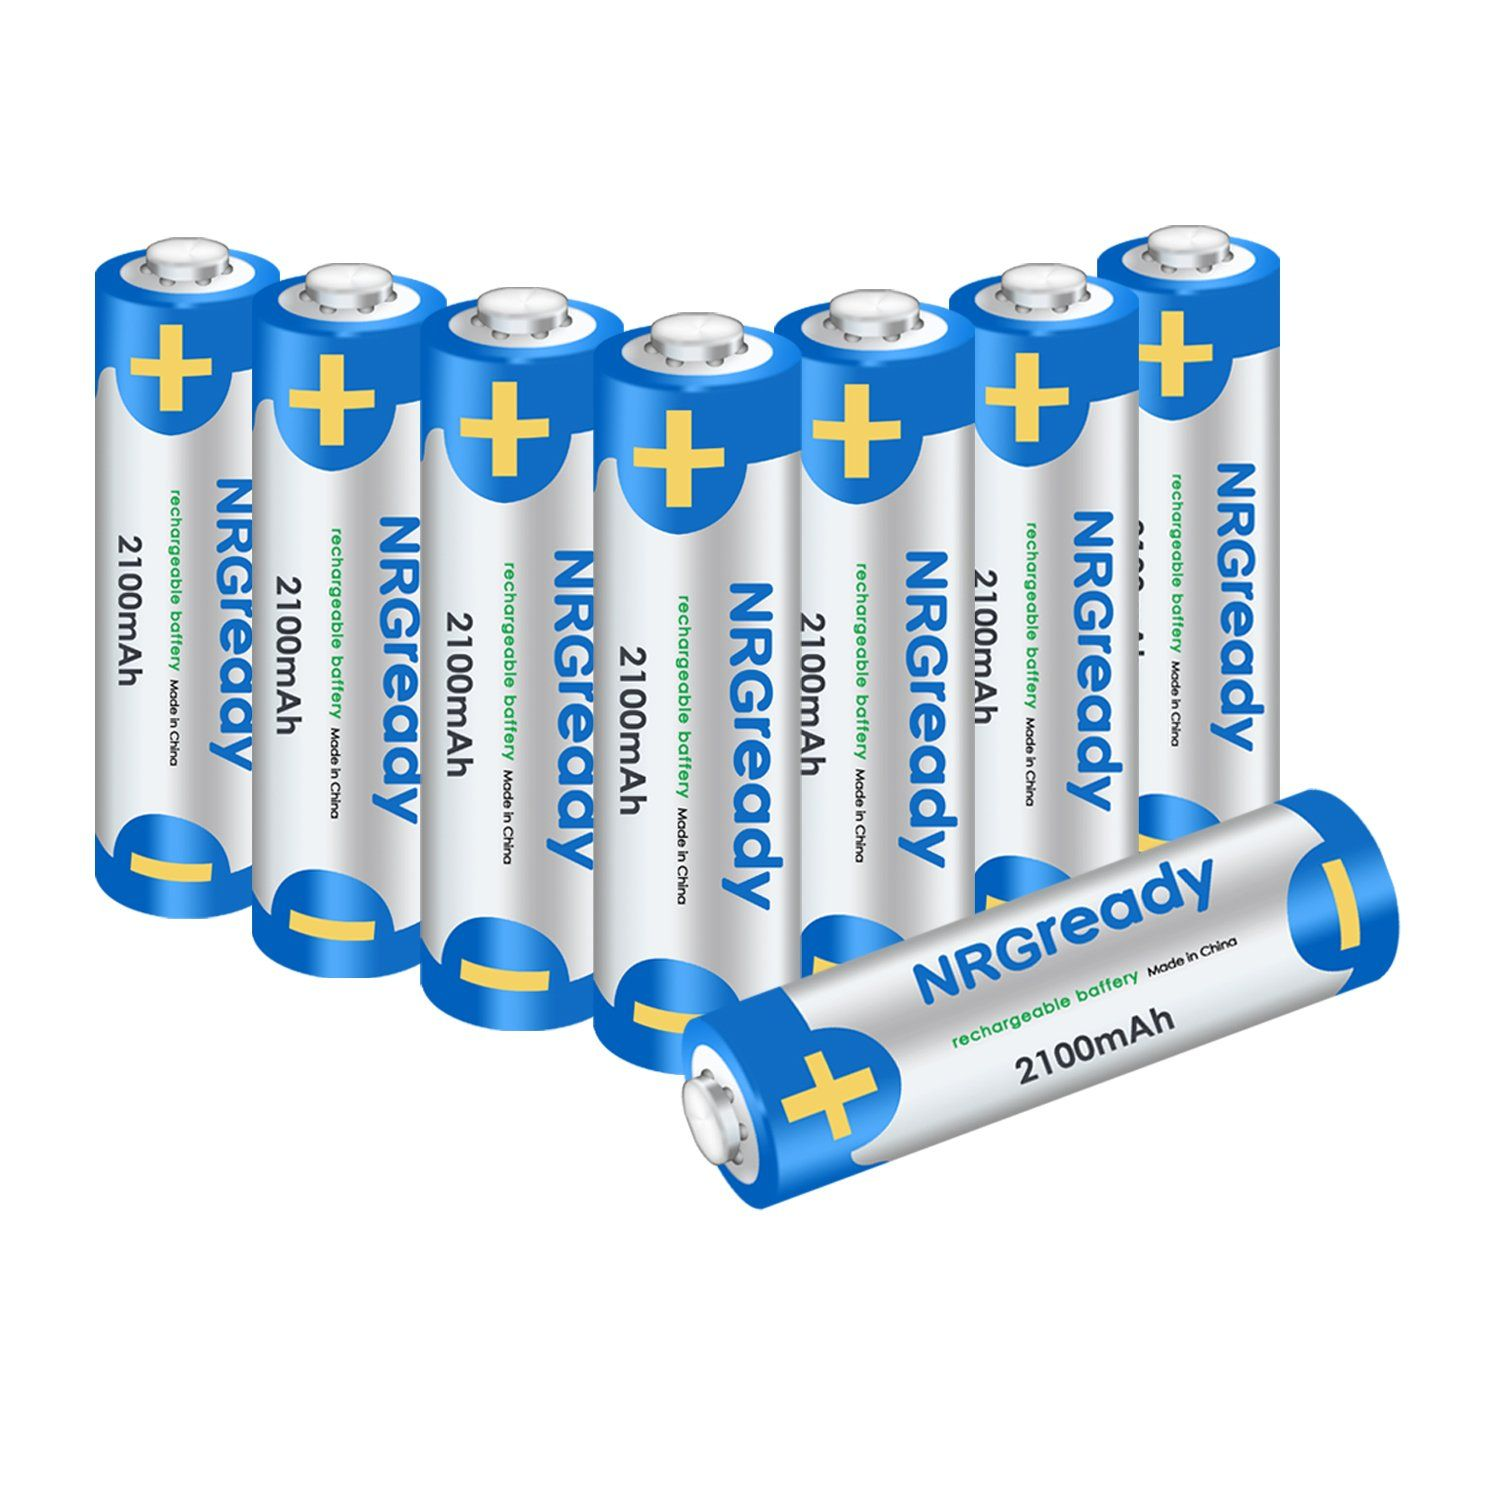 Nrgready Aa 2100mah Rechargeable Batteries High Capacity Ni Mh Pre Charged Batteries 8 Pack Rechargeable Batteries Batteries Charger Accessories